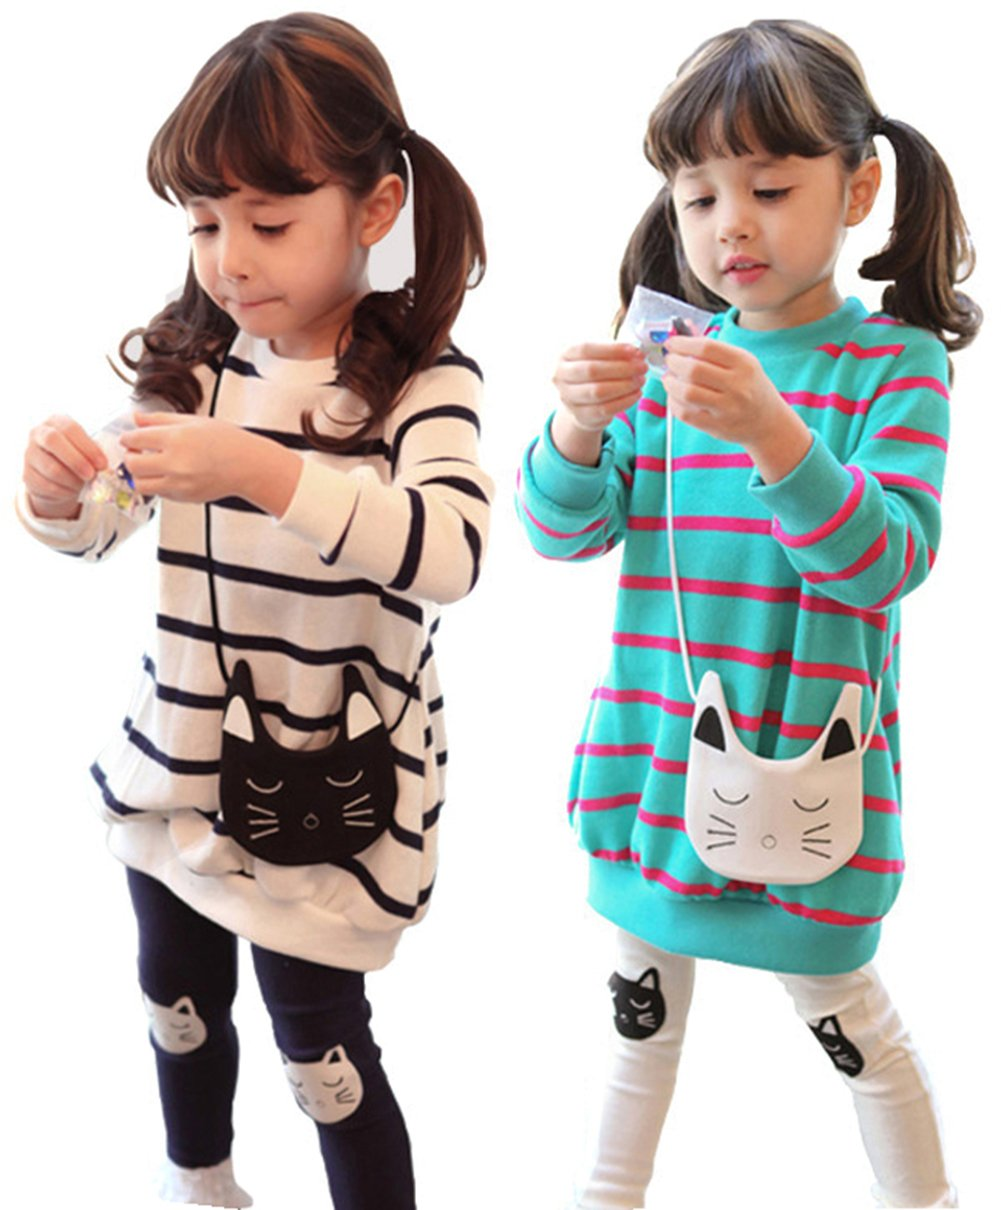 Girls Spring Autumn Cartoon Striped Clothing Sets Long Sleeve Tops + Pants C1020Y